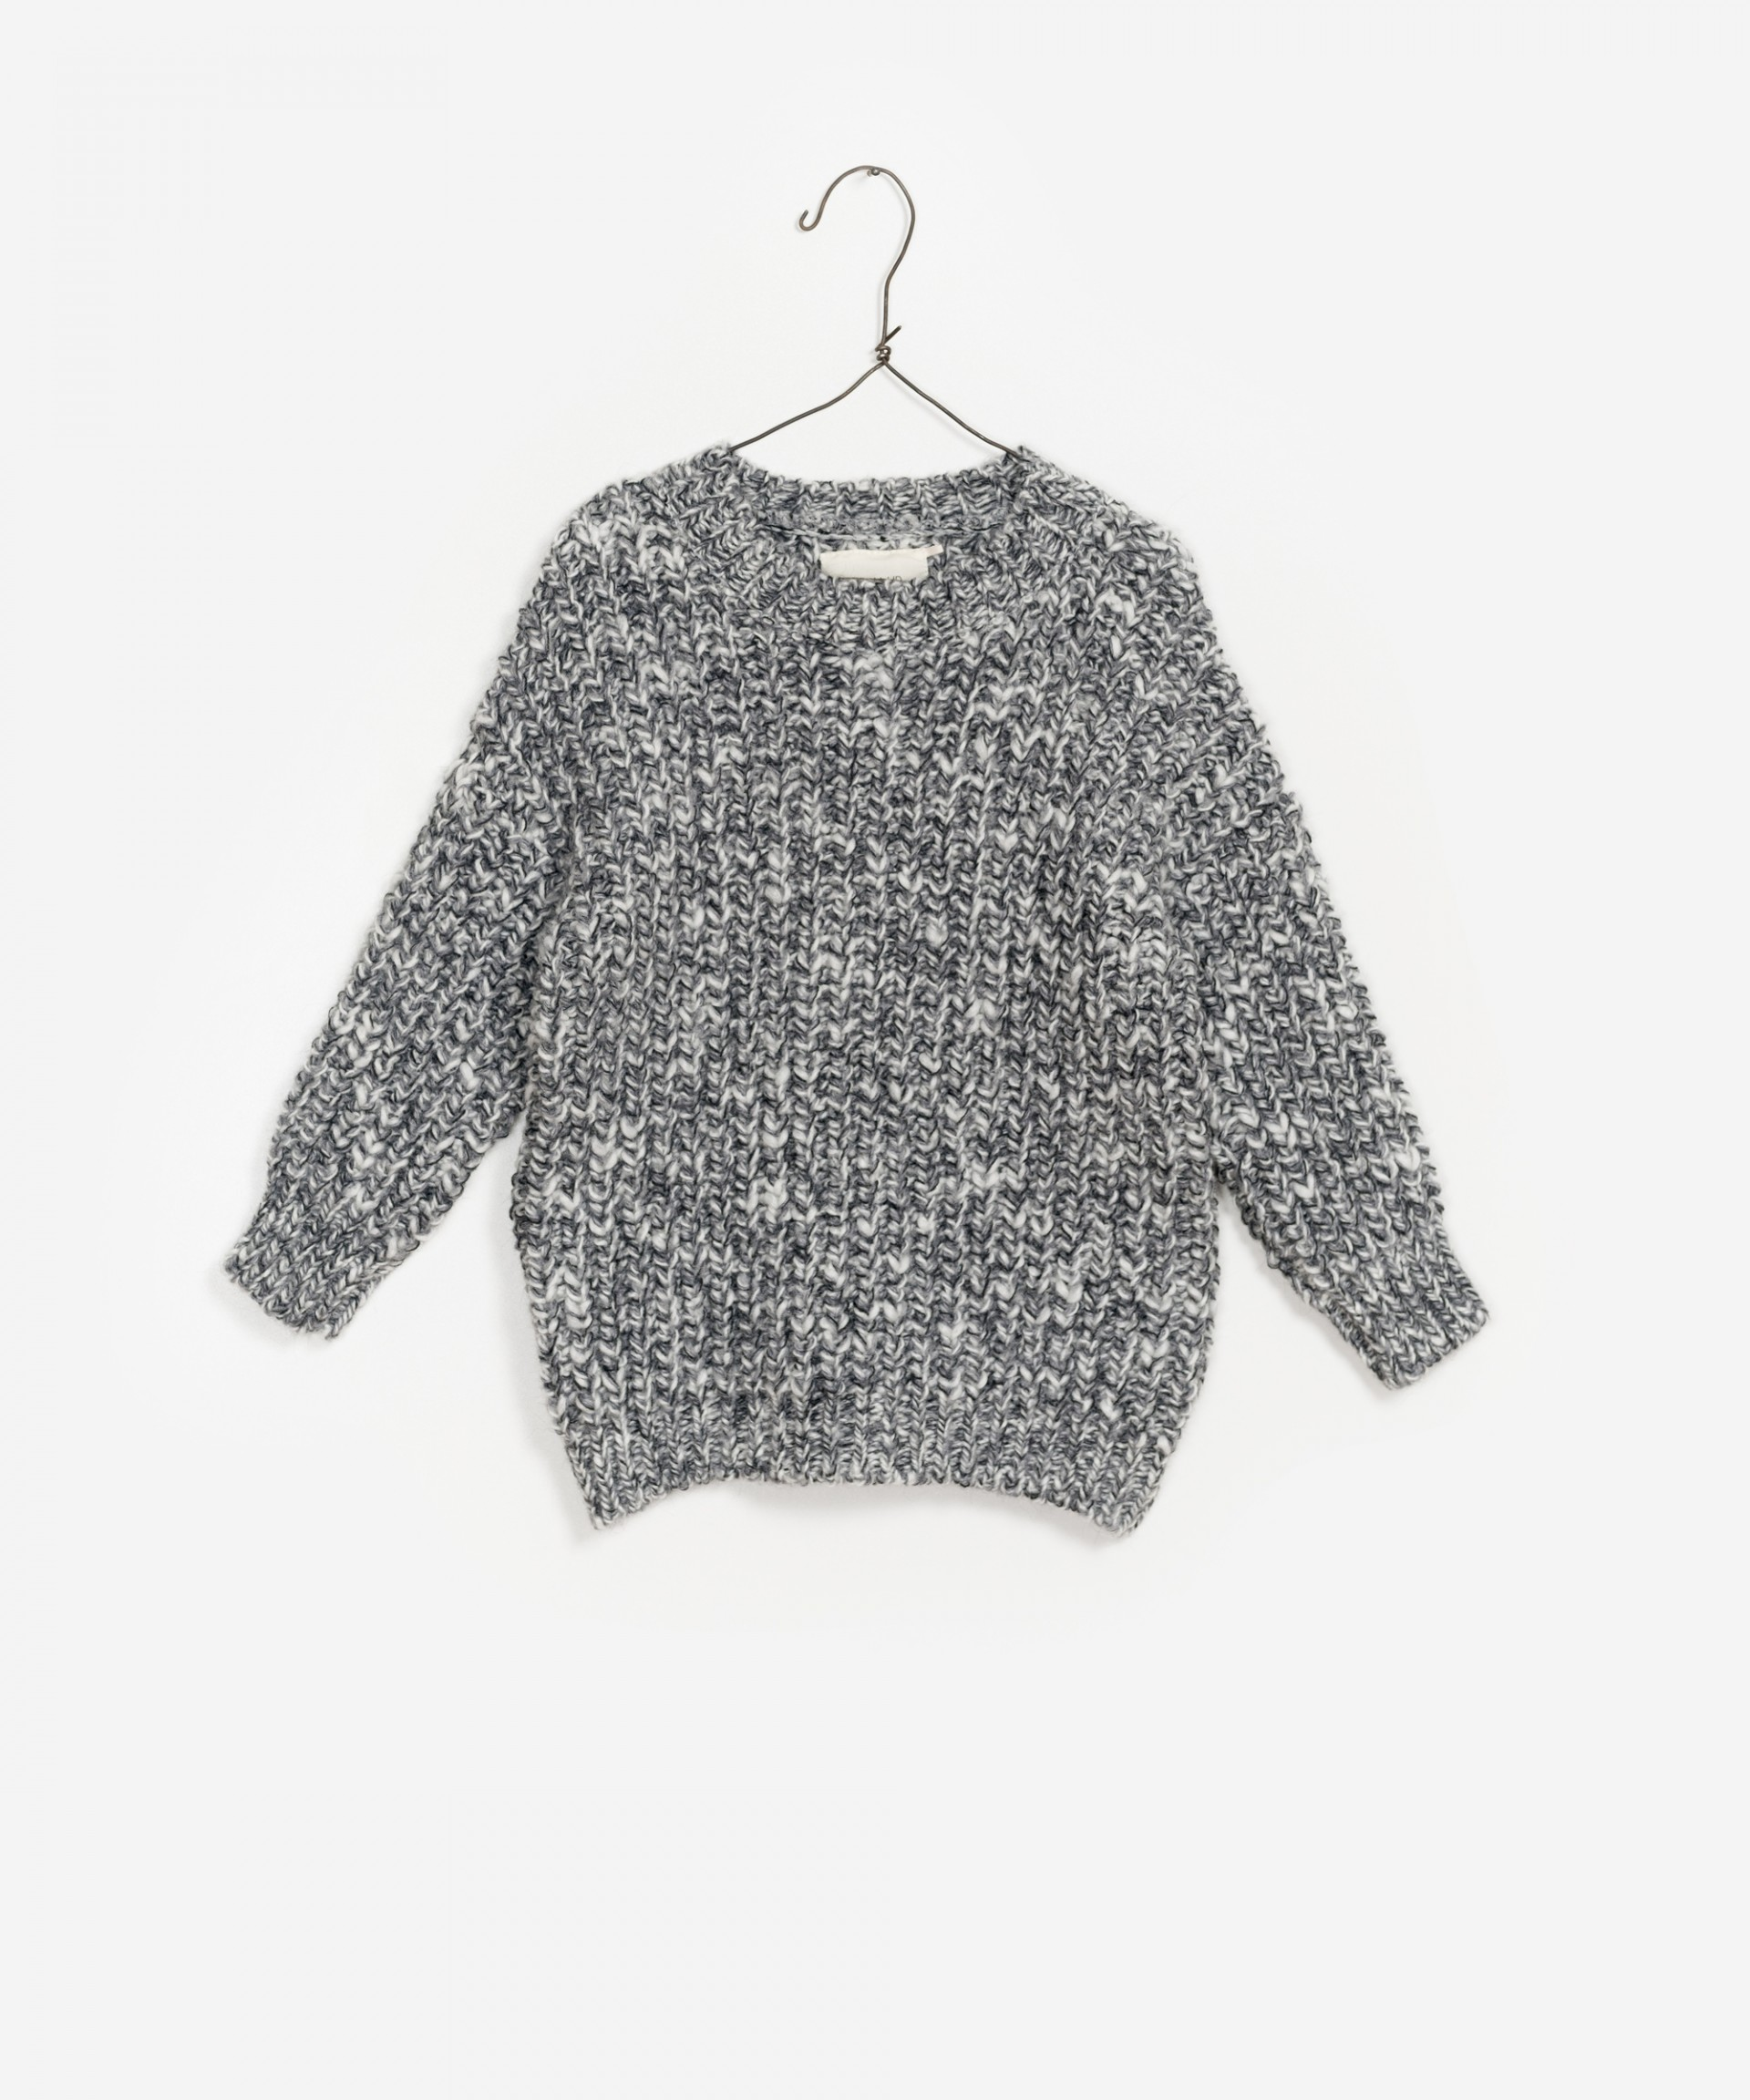 Knittedted Sweater